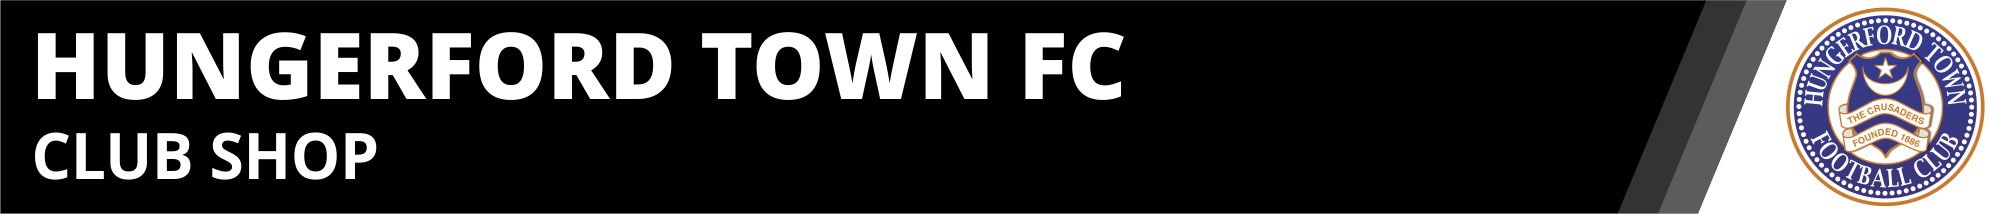 hungerford-town-fc-club-shop-banner.png